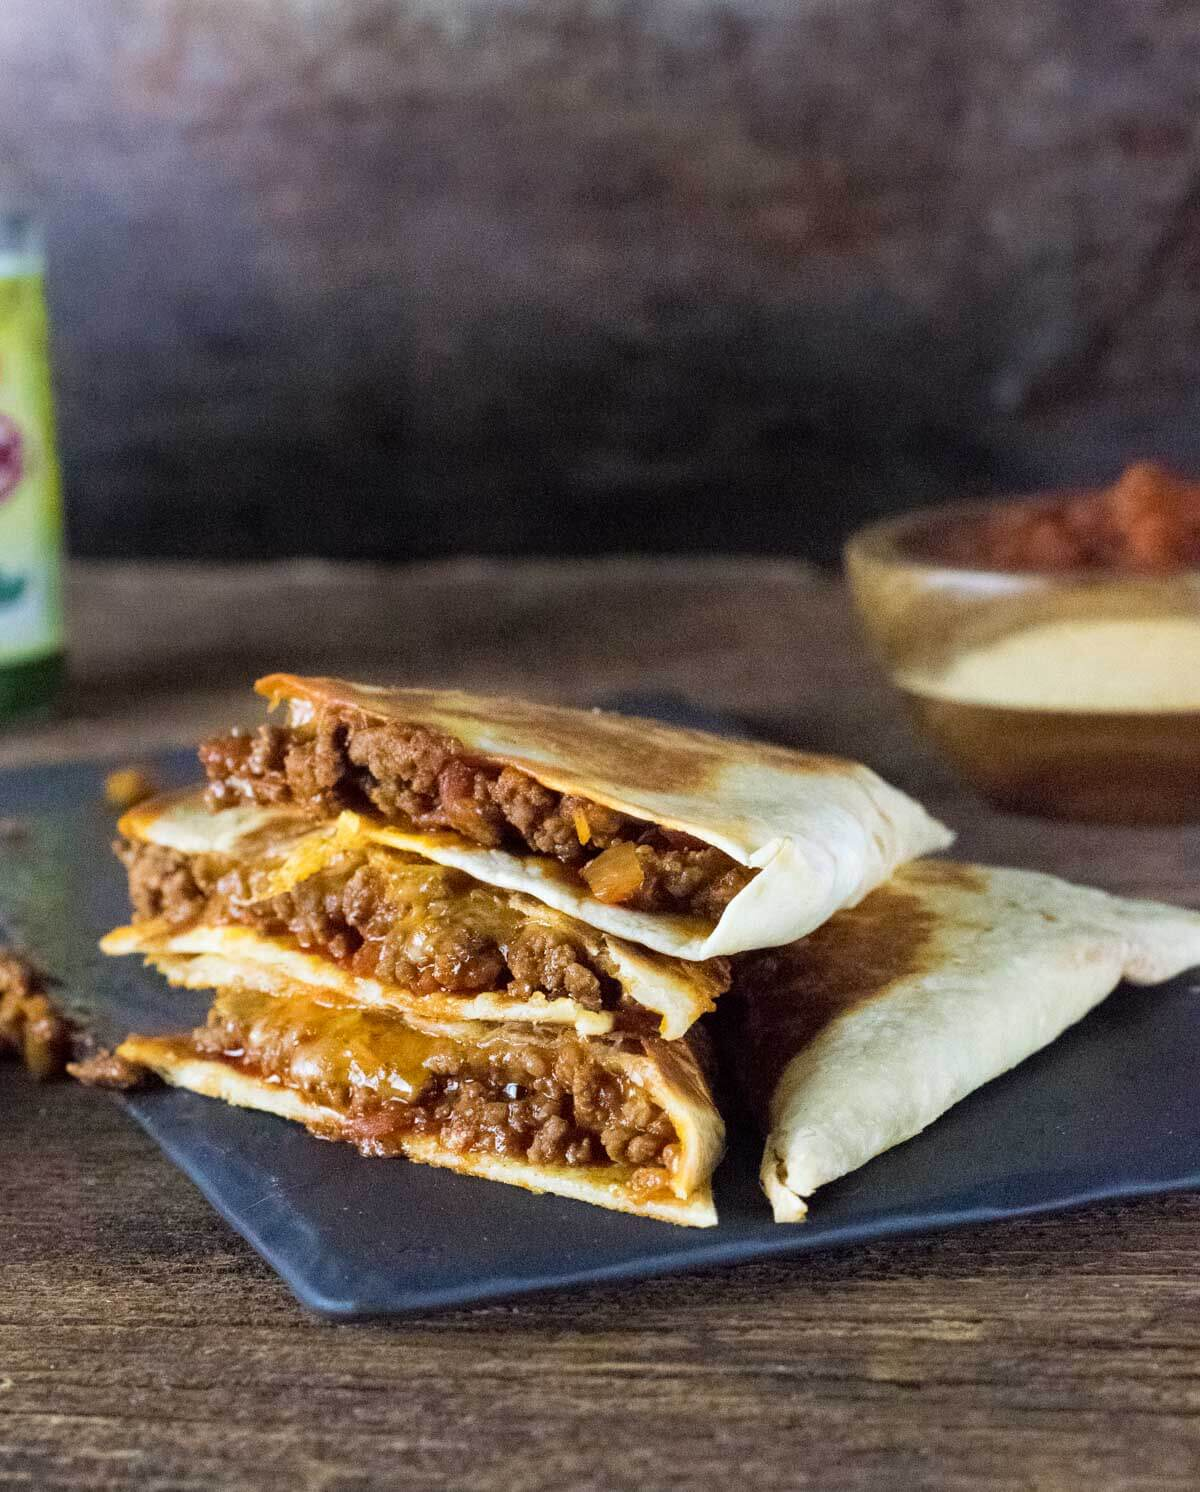 Ground beef quesadillas recipe